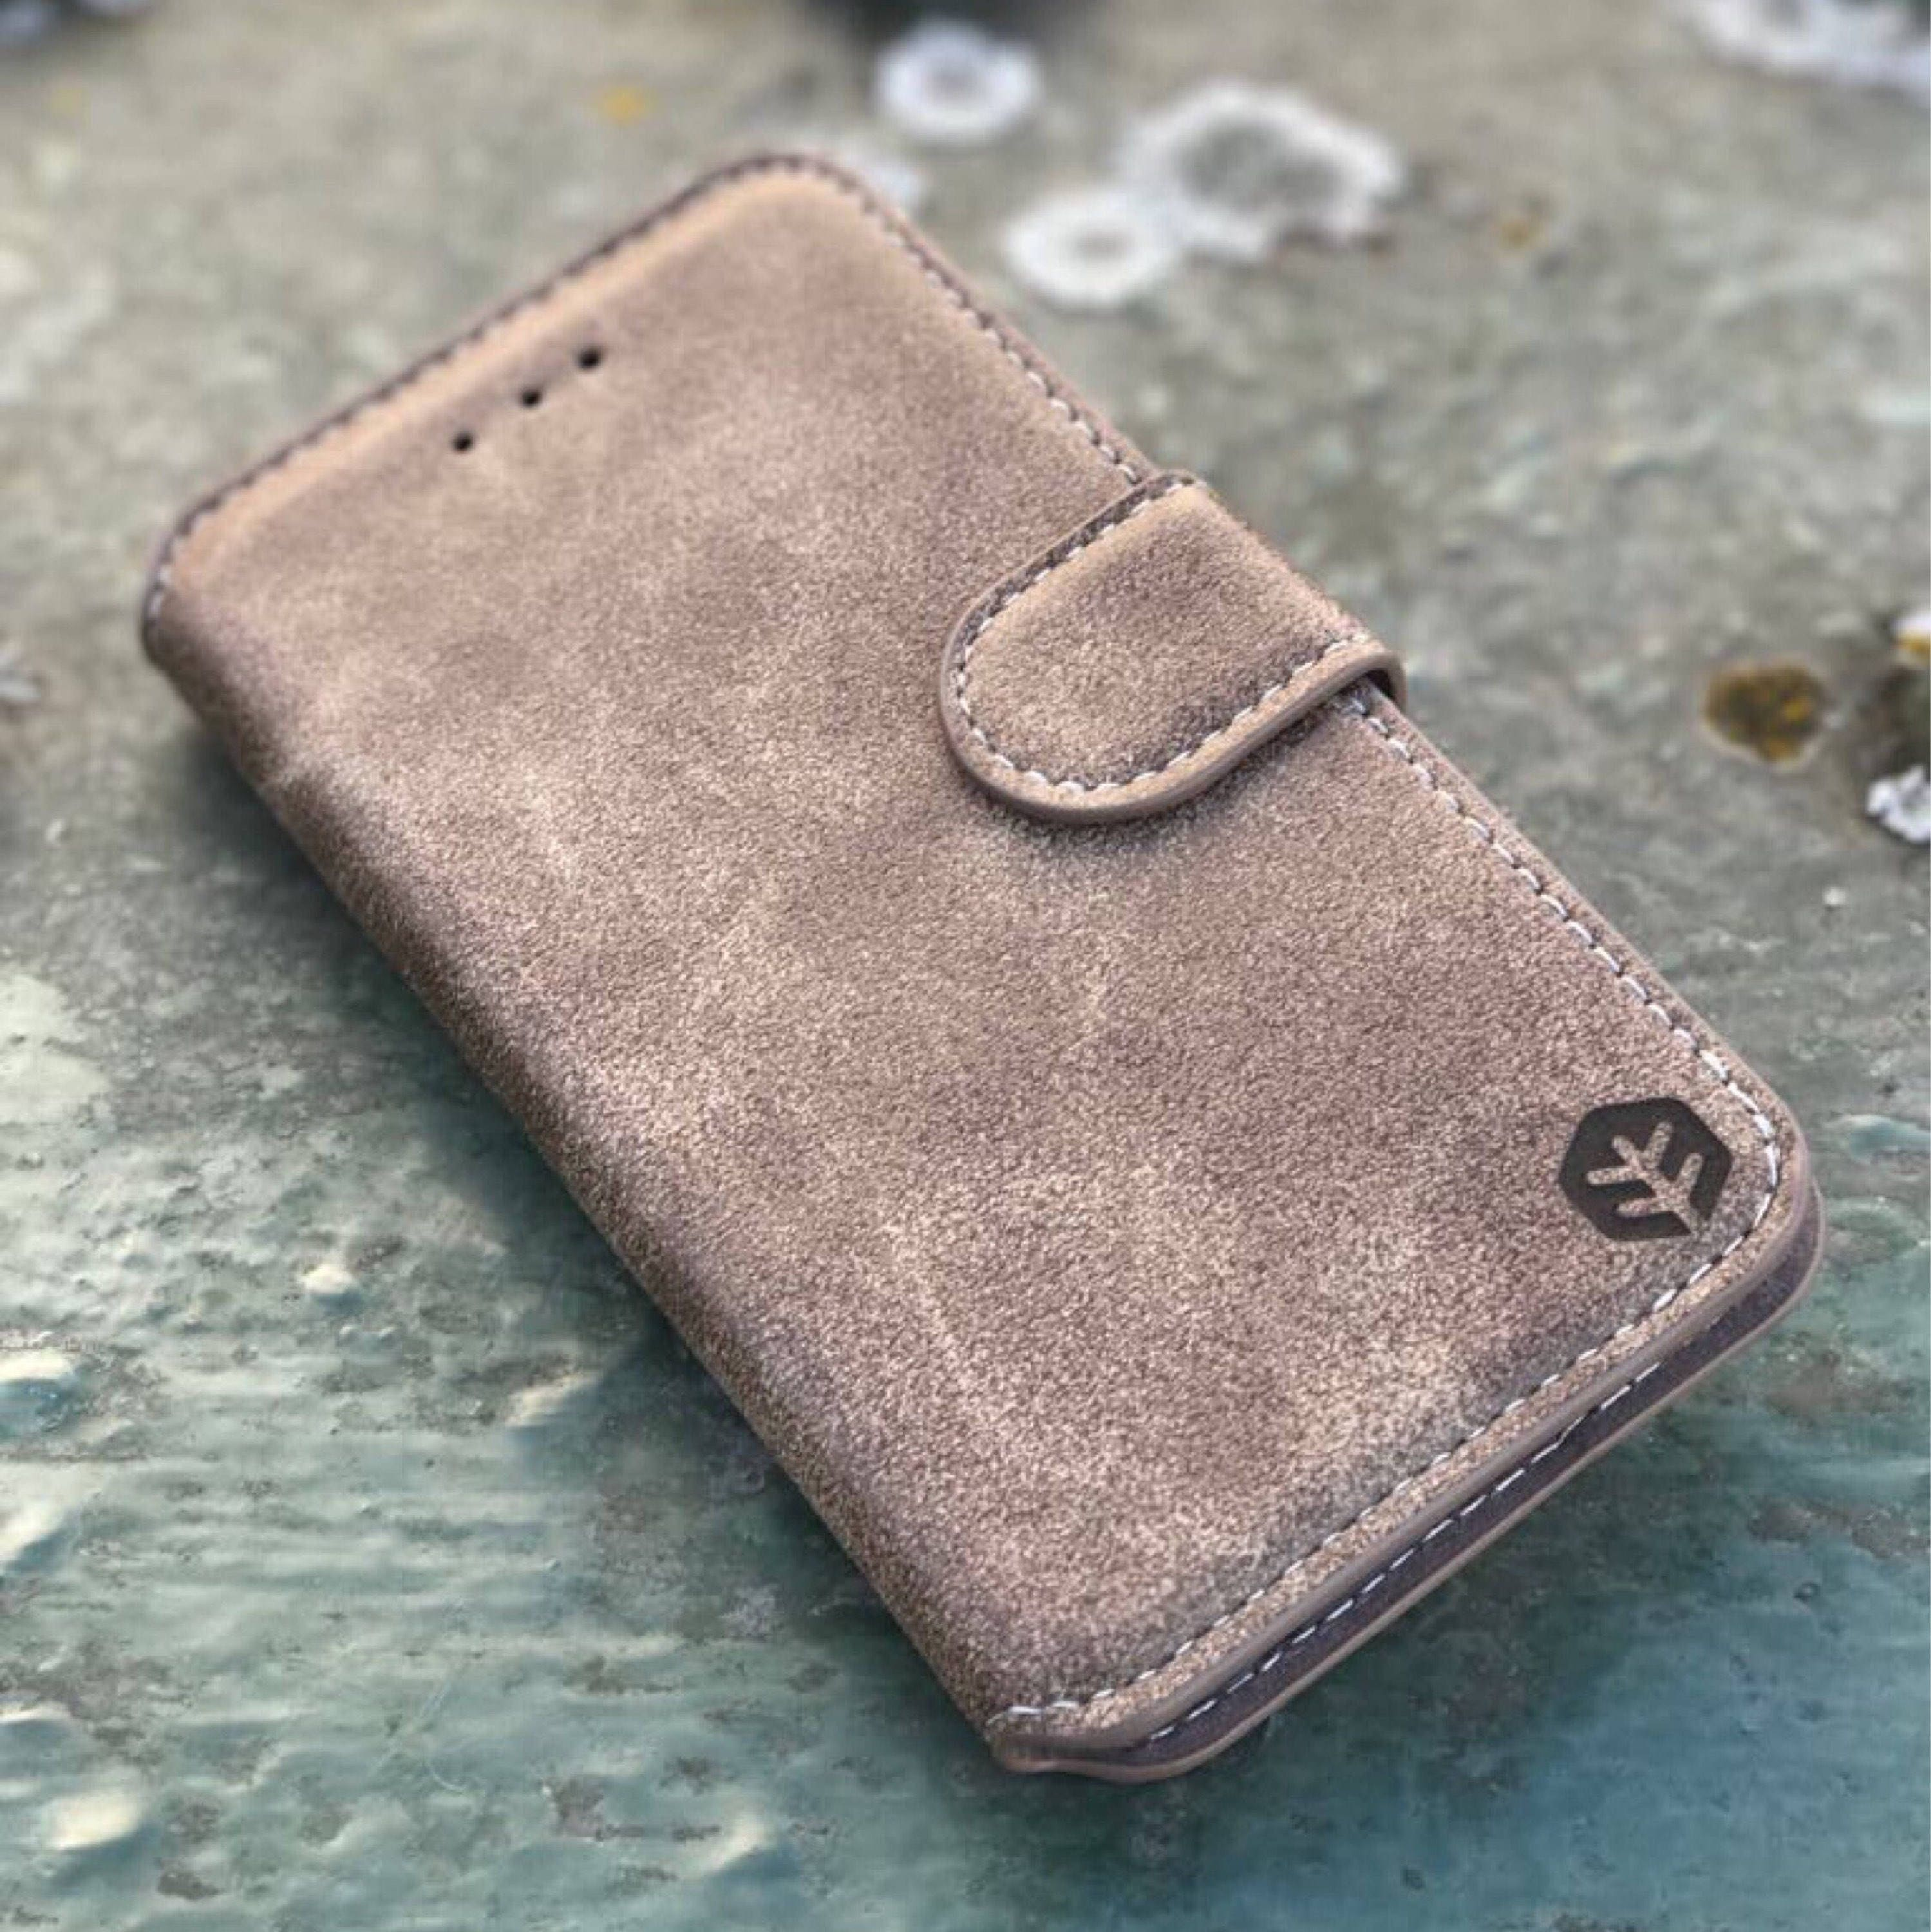 iphone 6 case khaki